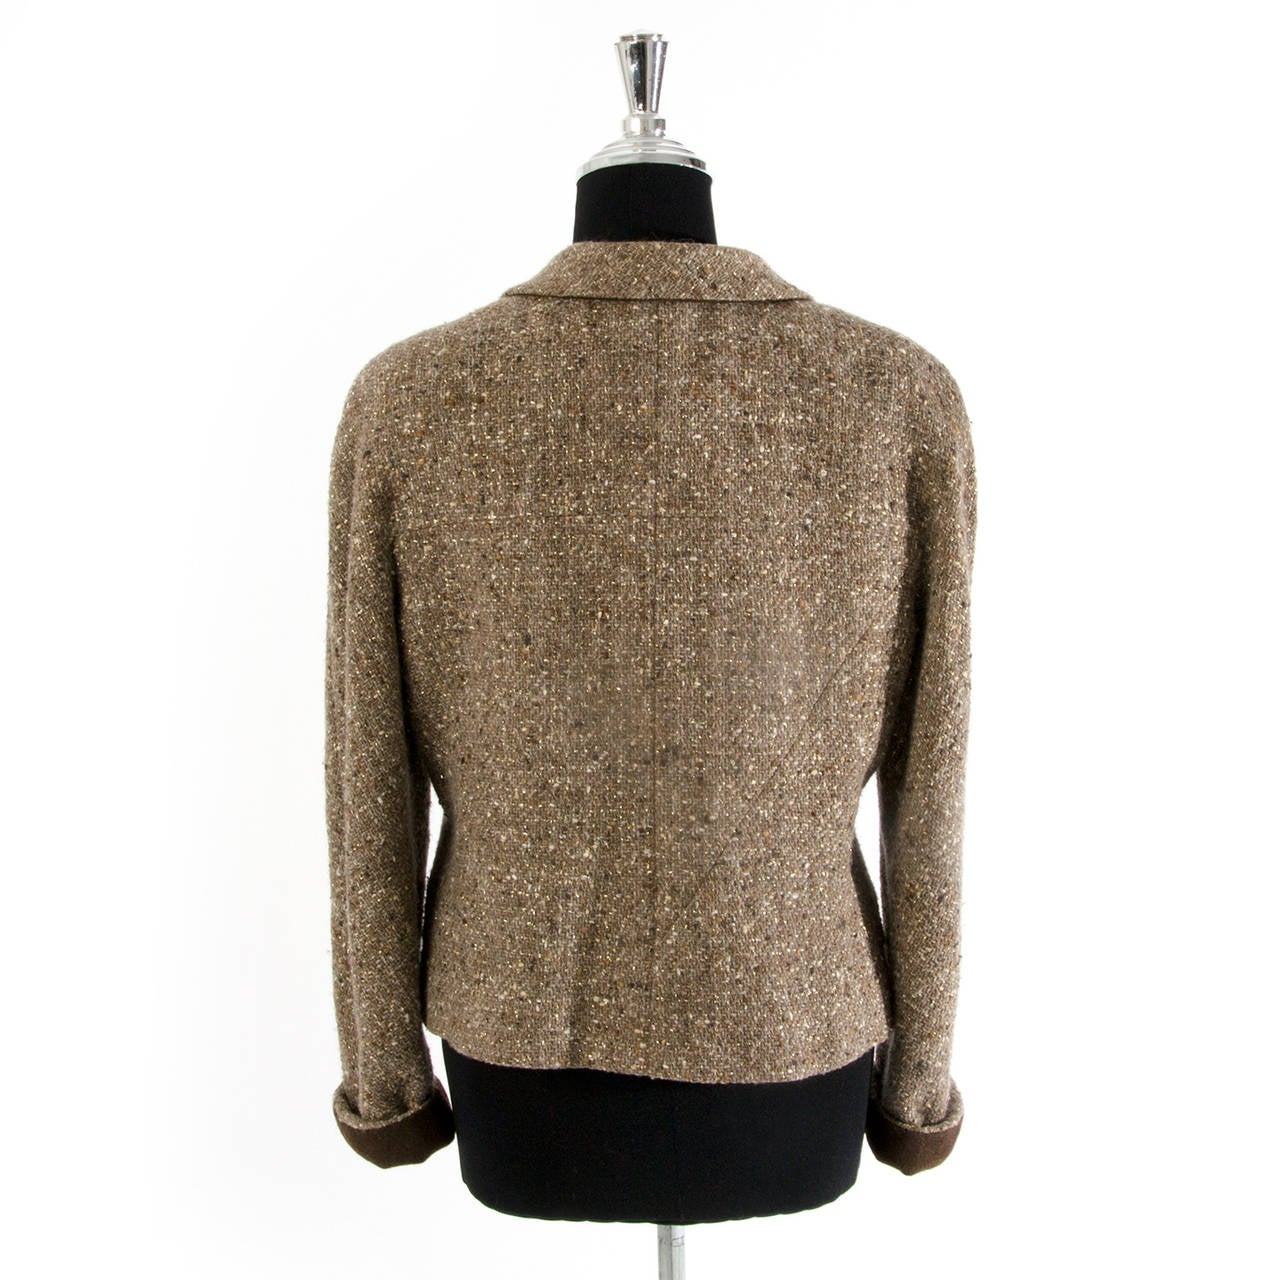 There is nothing quite as iconic as a classic Chanel tweed piece. Short brown  Chanel jacket. Made from famous Bouclé wool tweed with brown checked pattern. Some specks of gold , creme and beige throughout the tissue. Brown Silk lining.